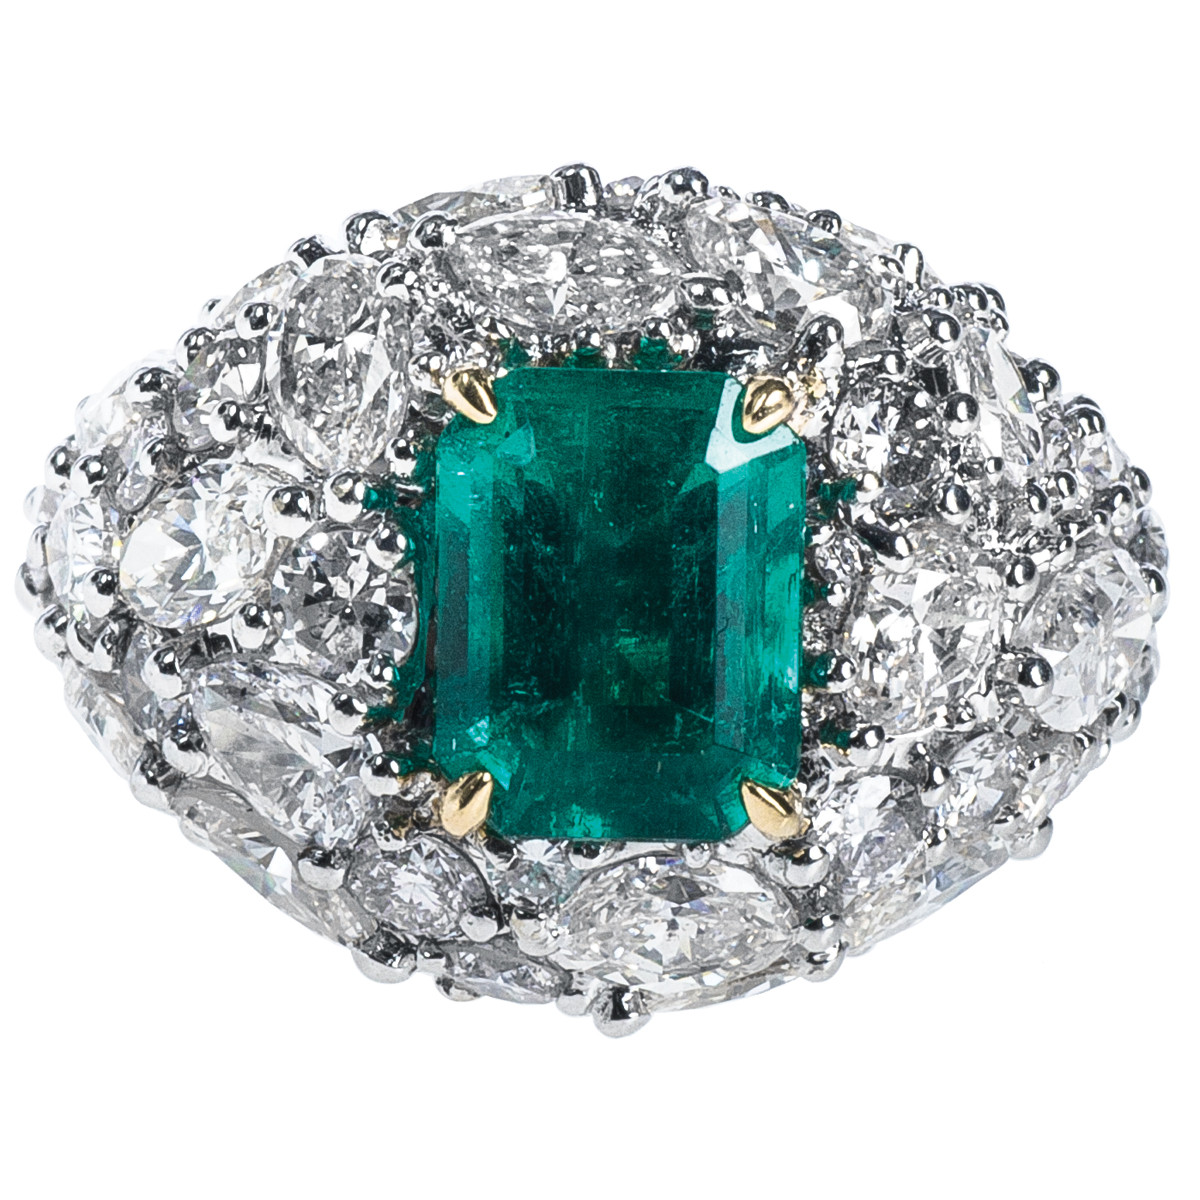 2.19 CT Emerald & 5.59 CTW Diamond Ring